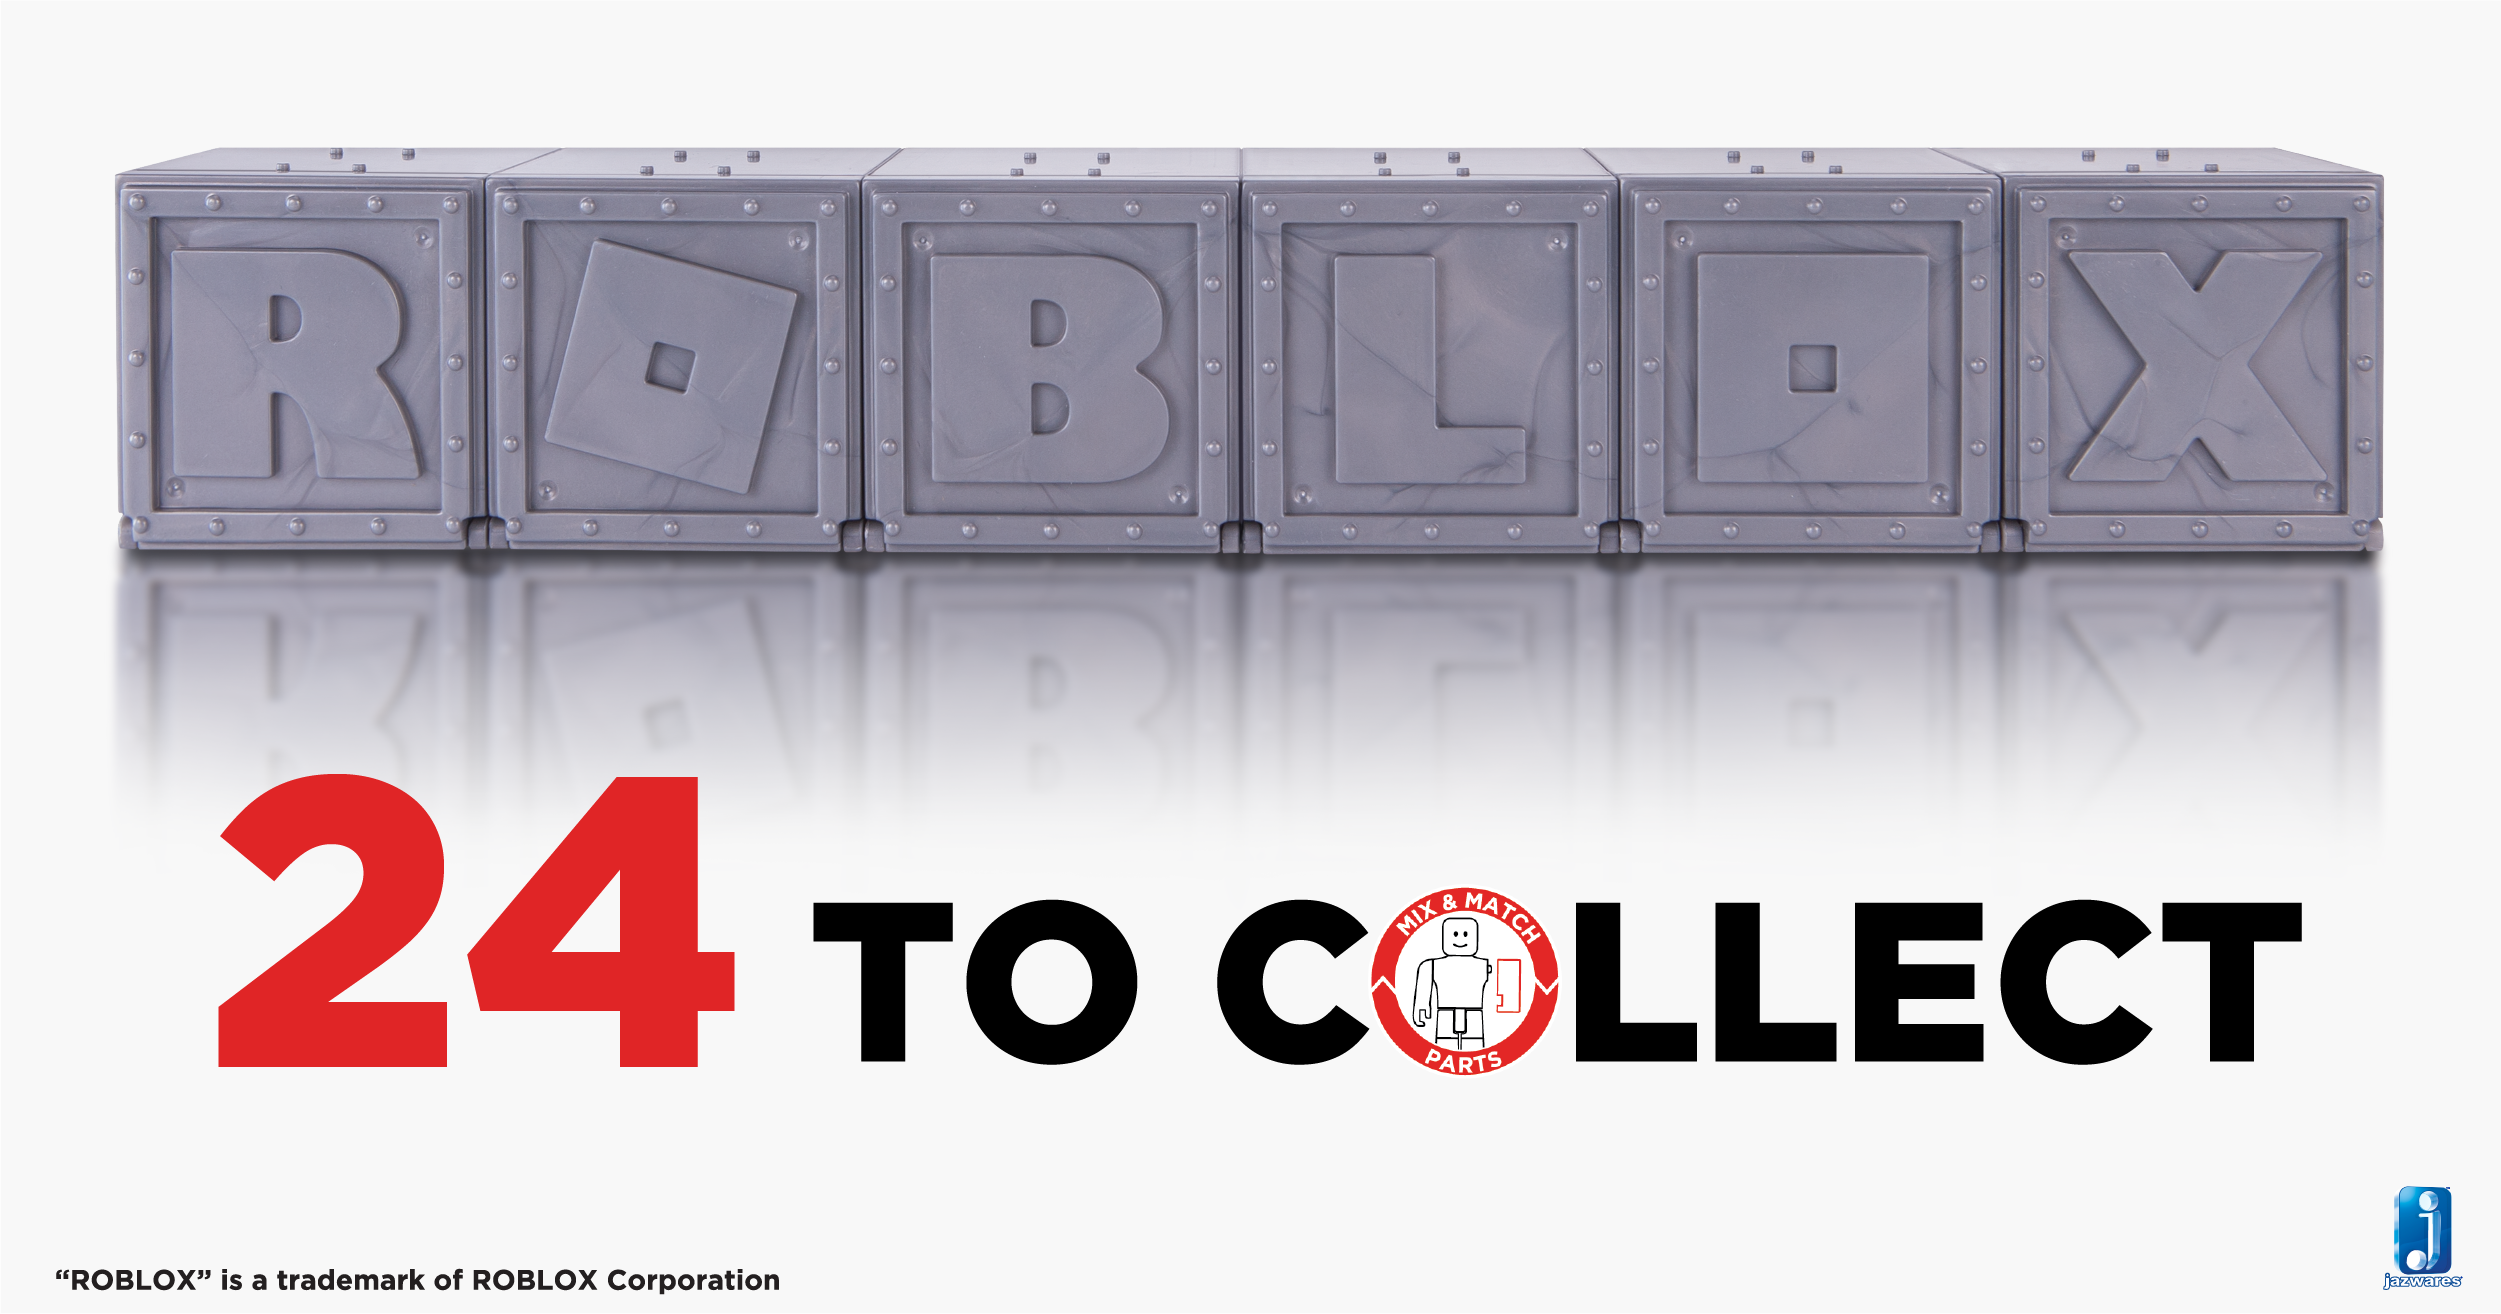 Roblox gear id code list bing images - Collect All 24 Of Our Roblox Mystery Figures Available Now In U S Stores And Online